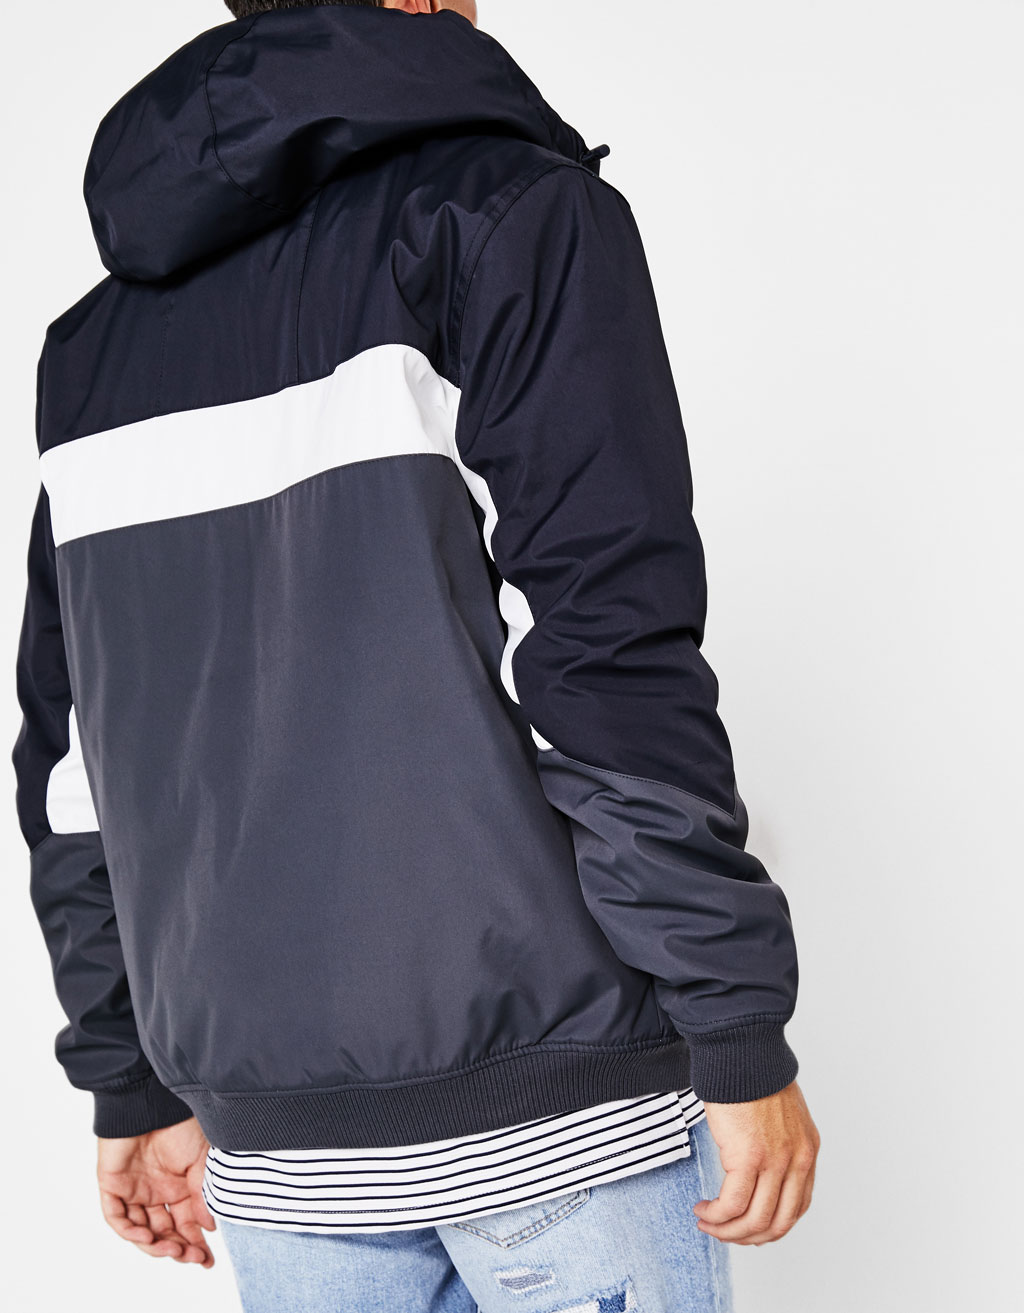 Three-tone jacket with hood